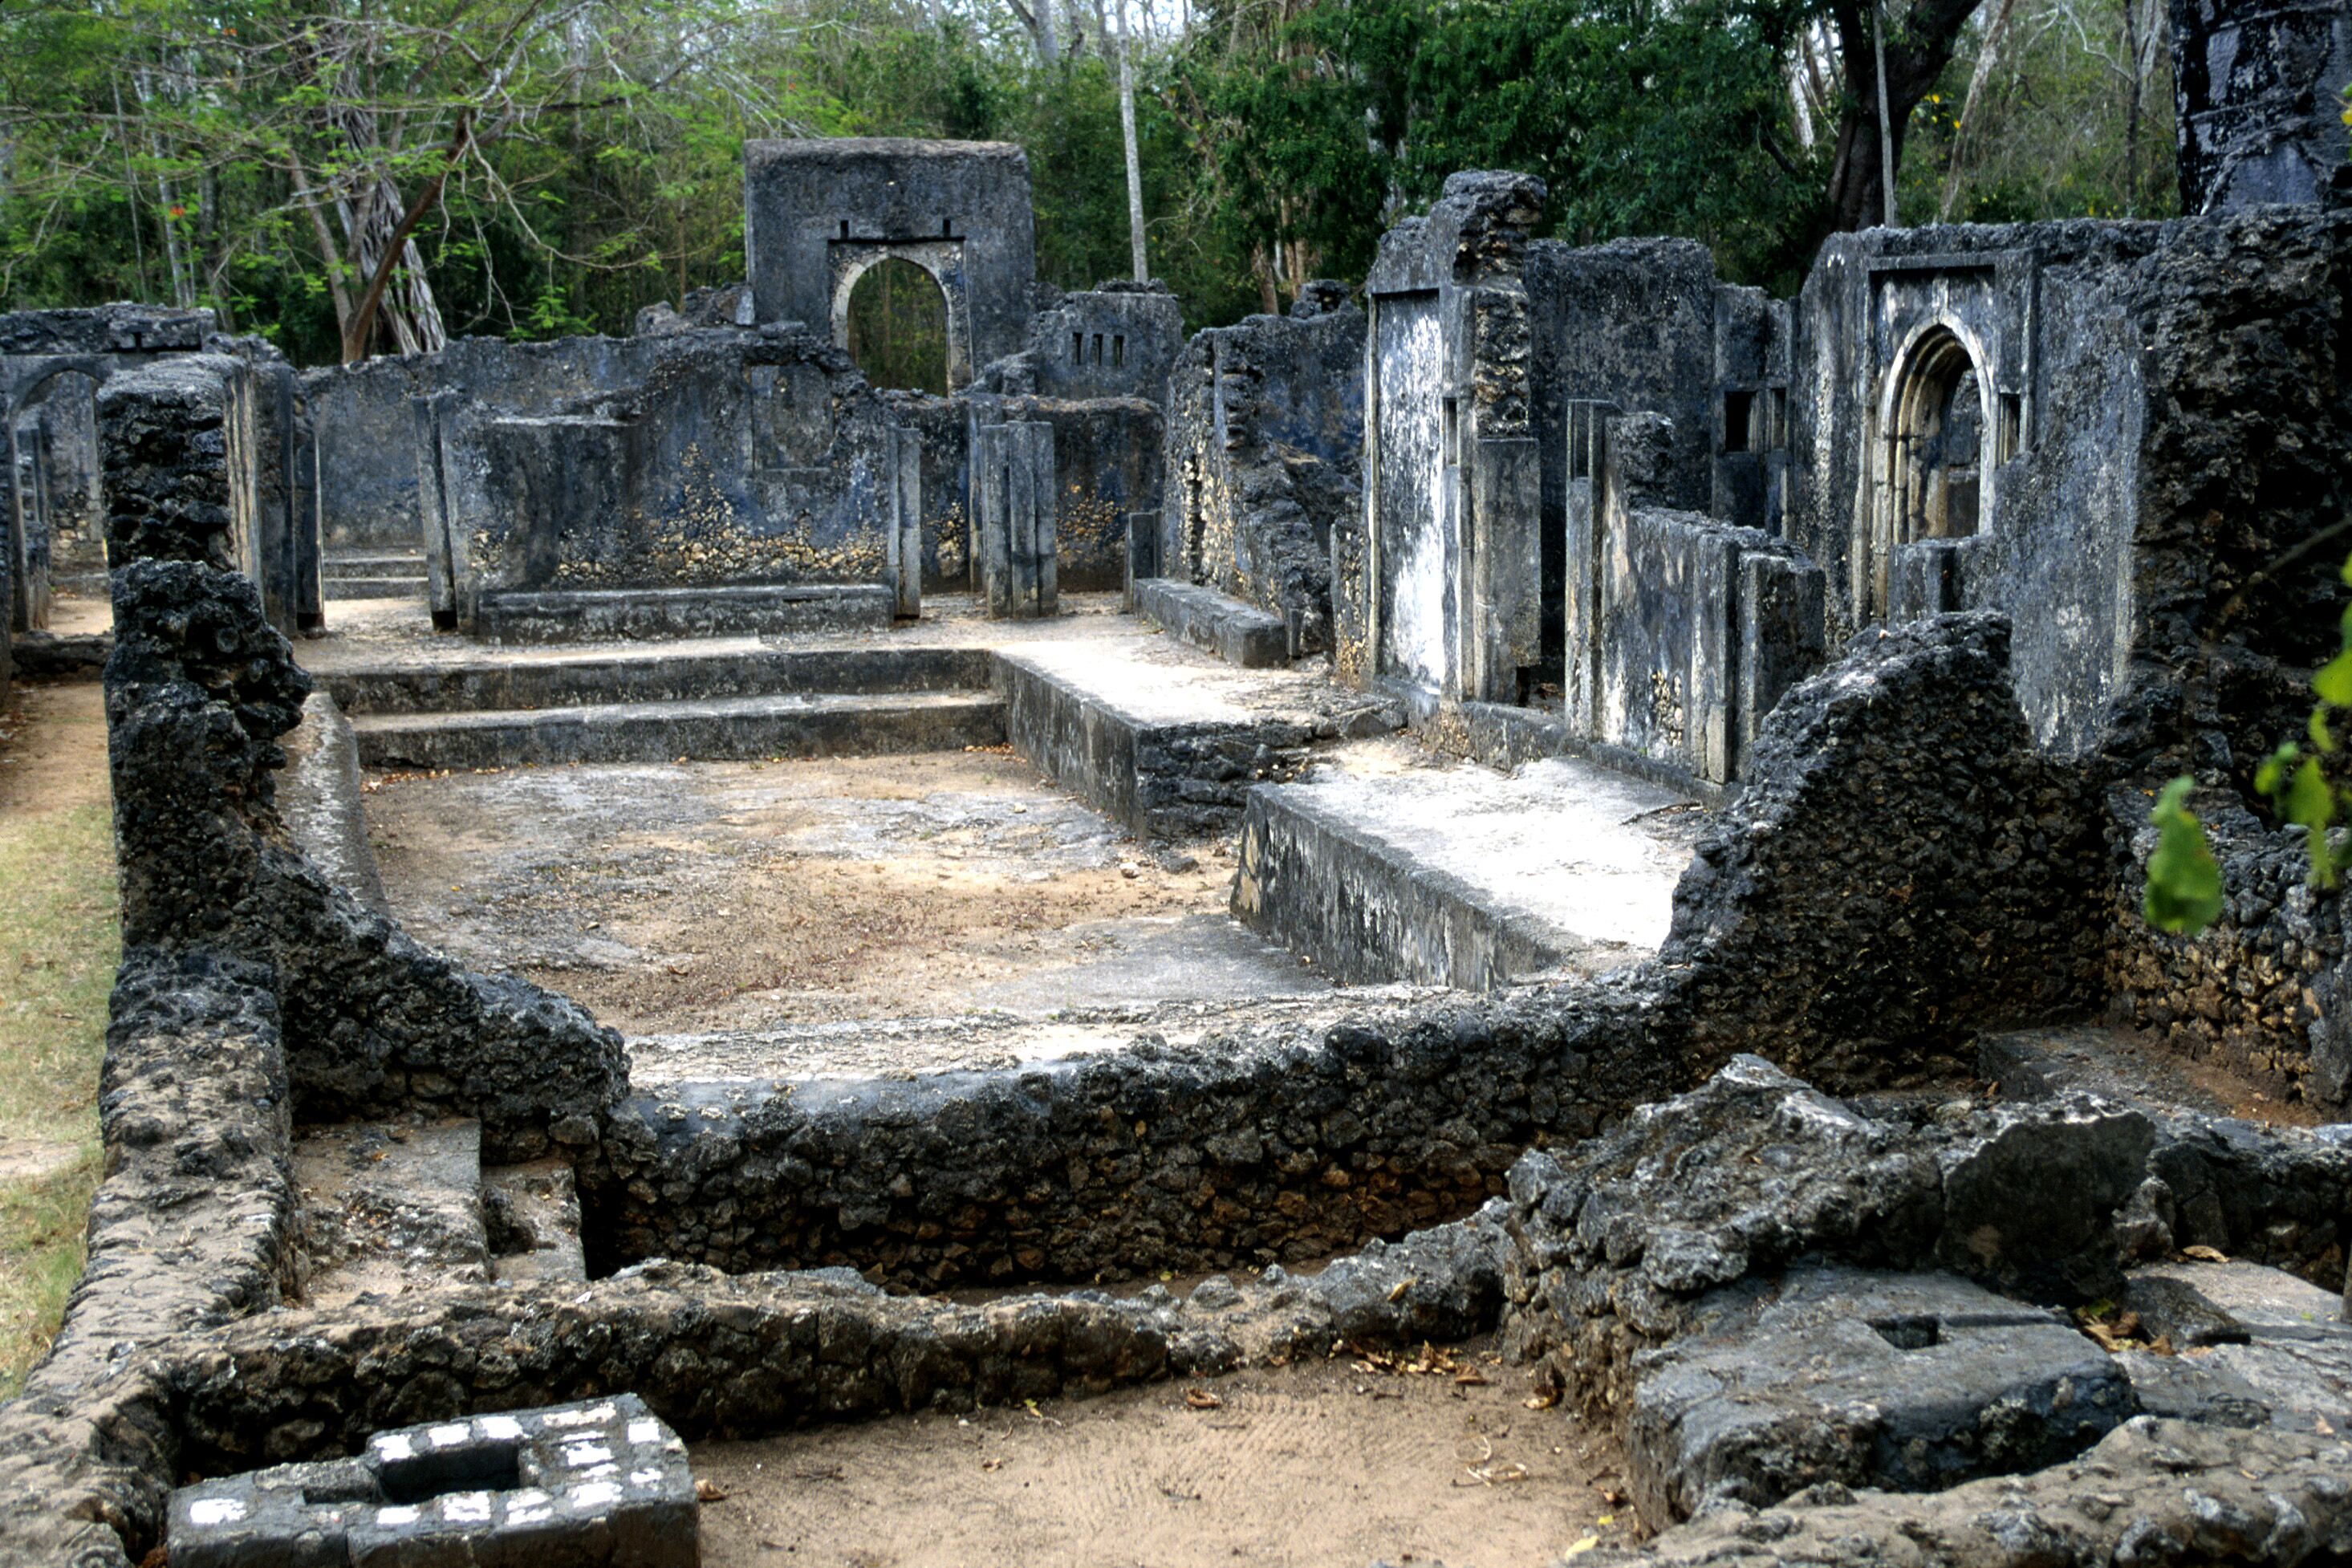 Architectural ruins at the Gedi Historical Monument in Kenya on June 13, 2012.